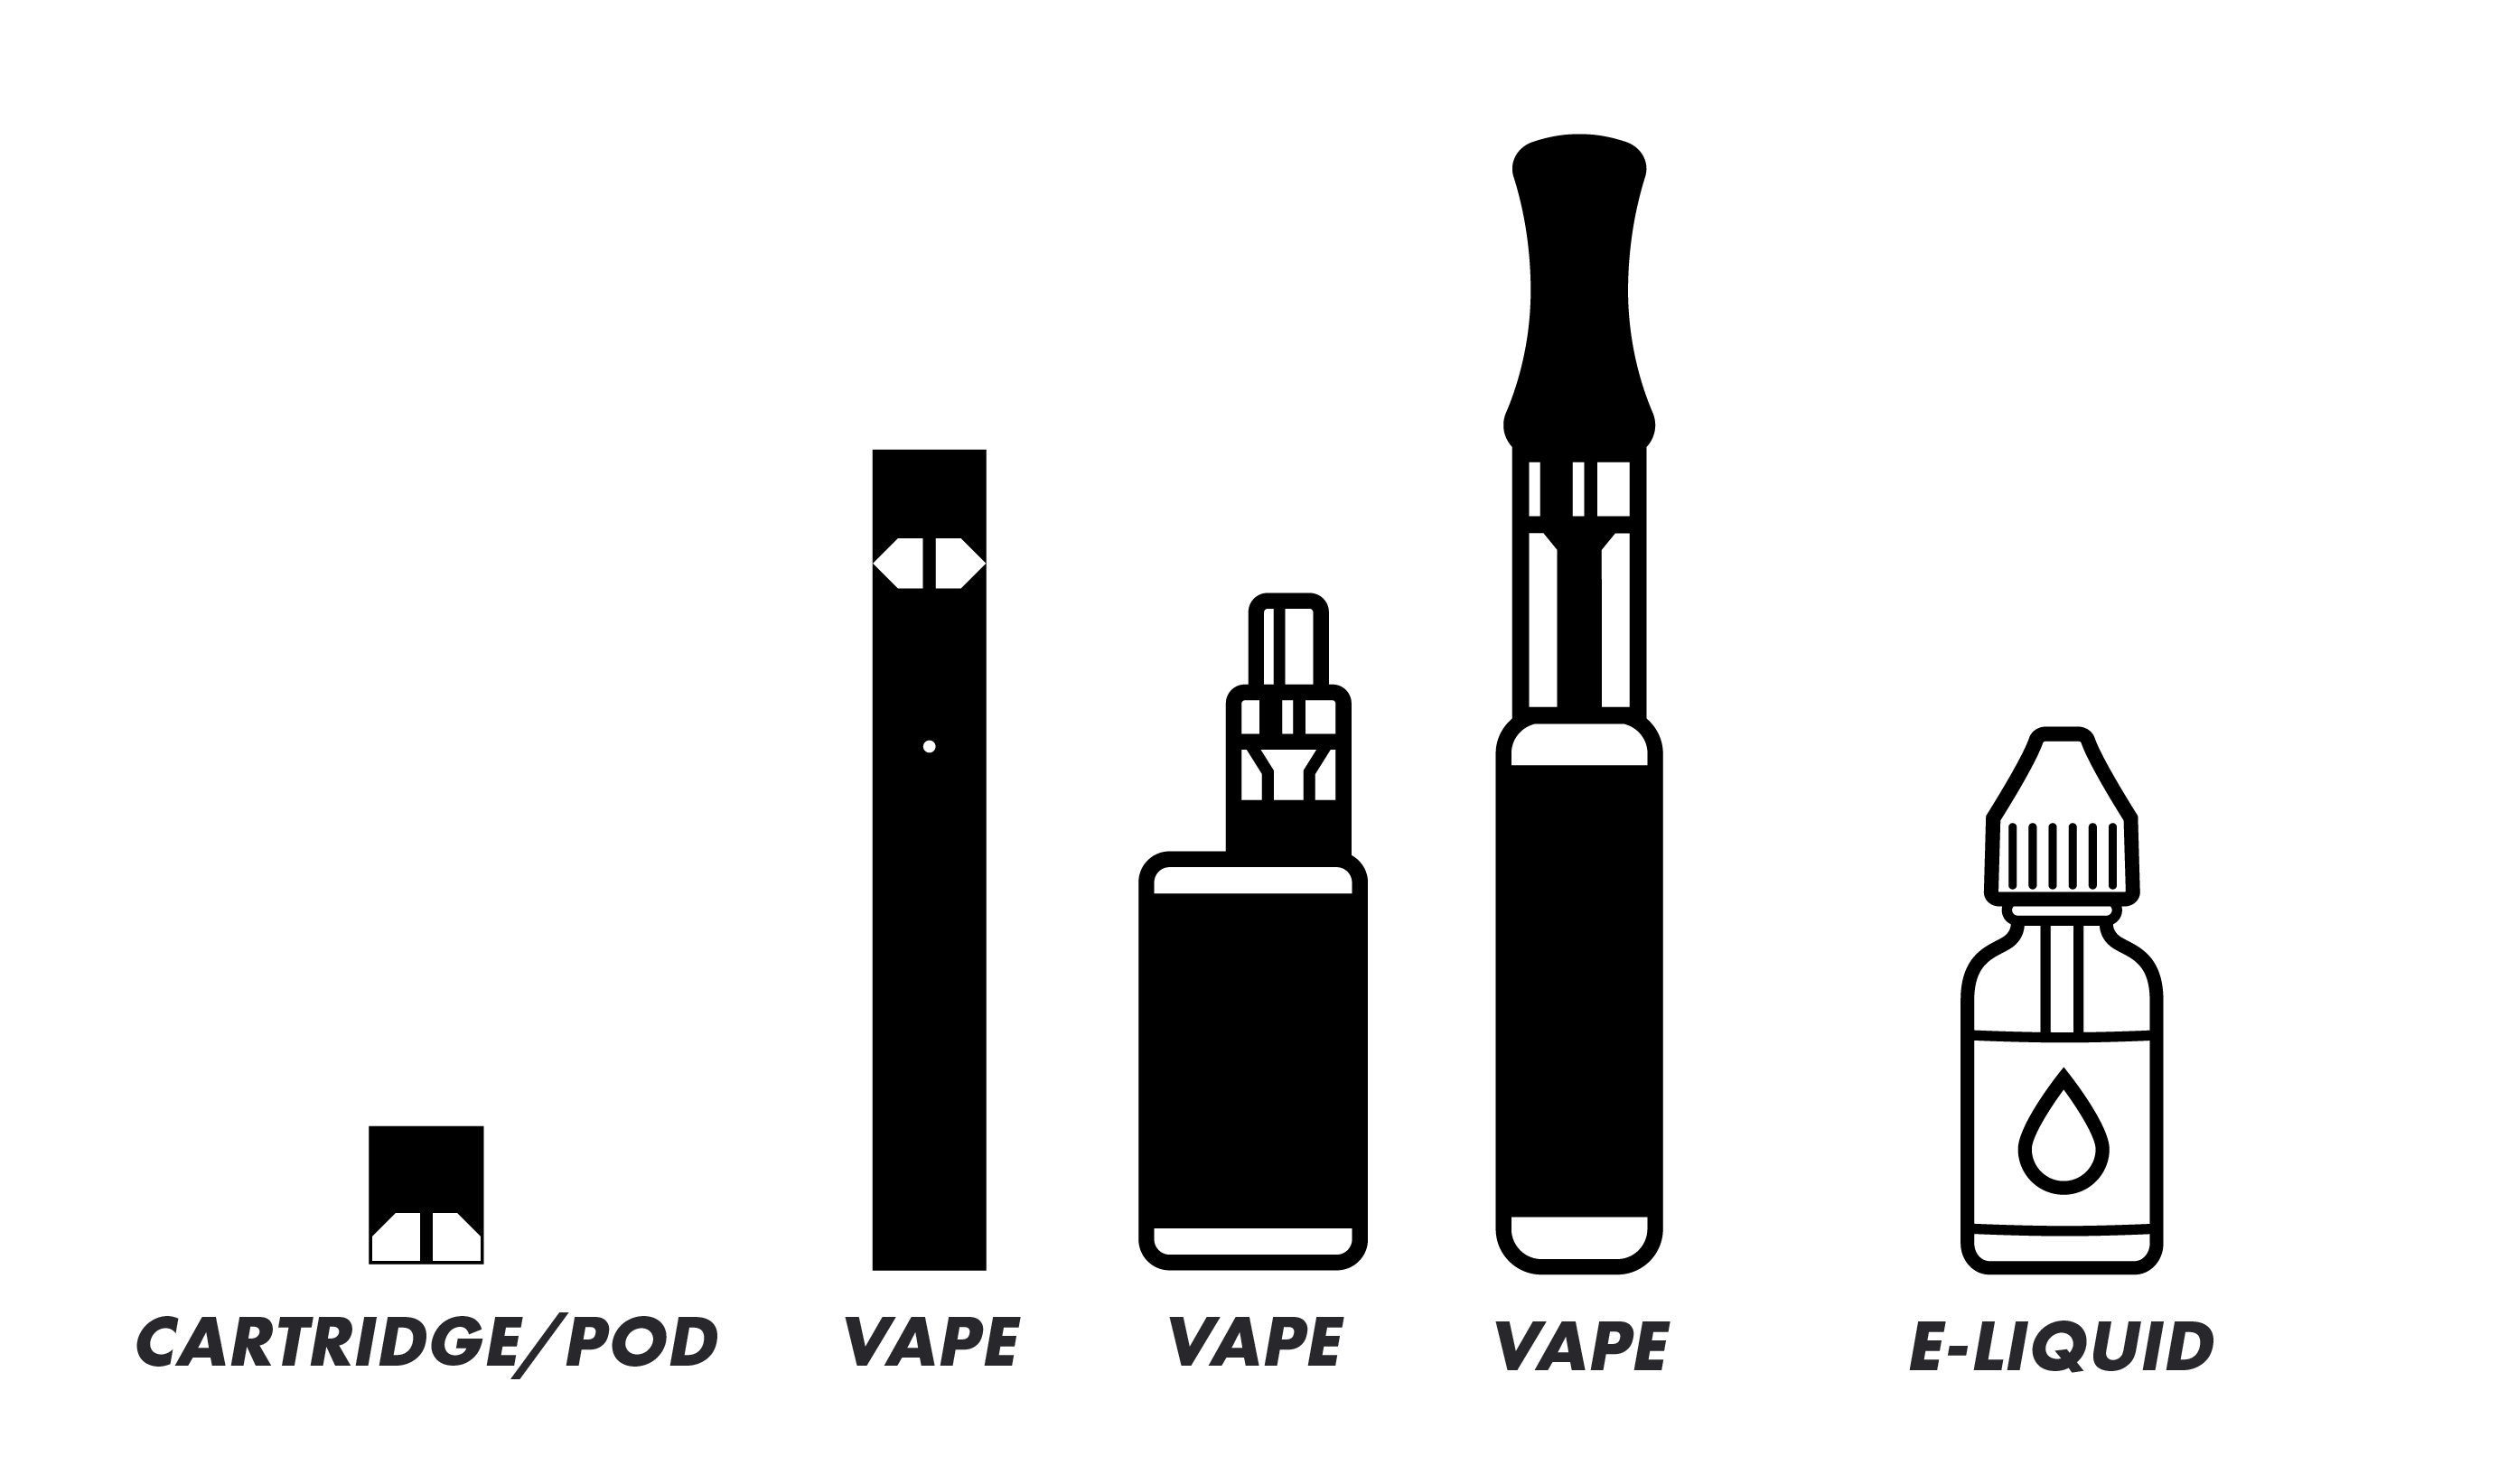 Different types of Vapes and E-Liquit